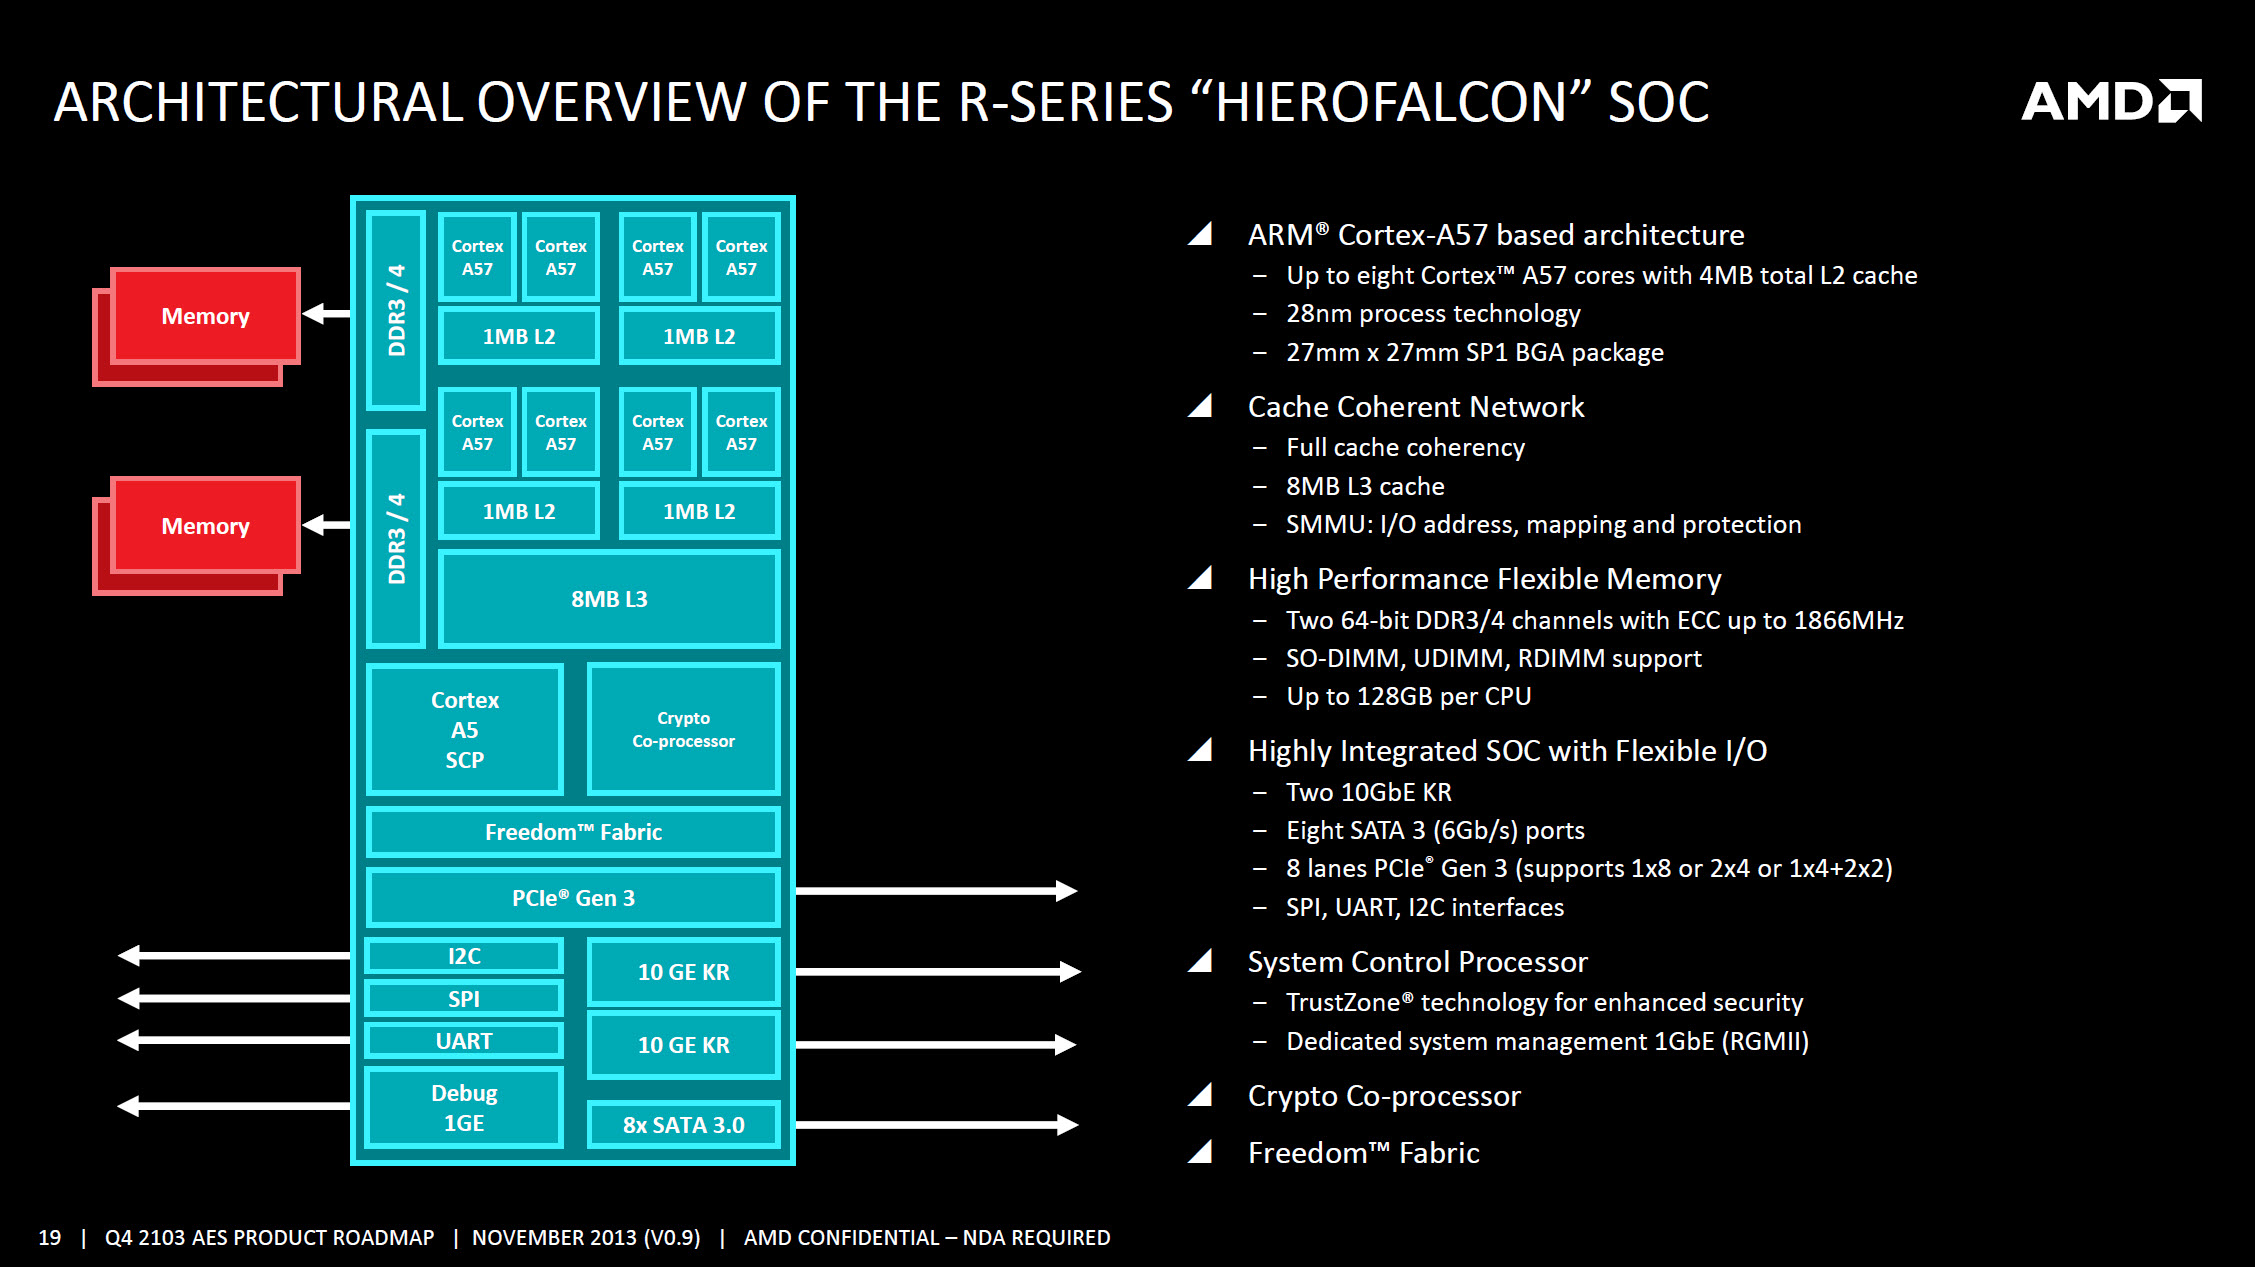 AMD R-Series Hierofalcon SOC